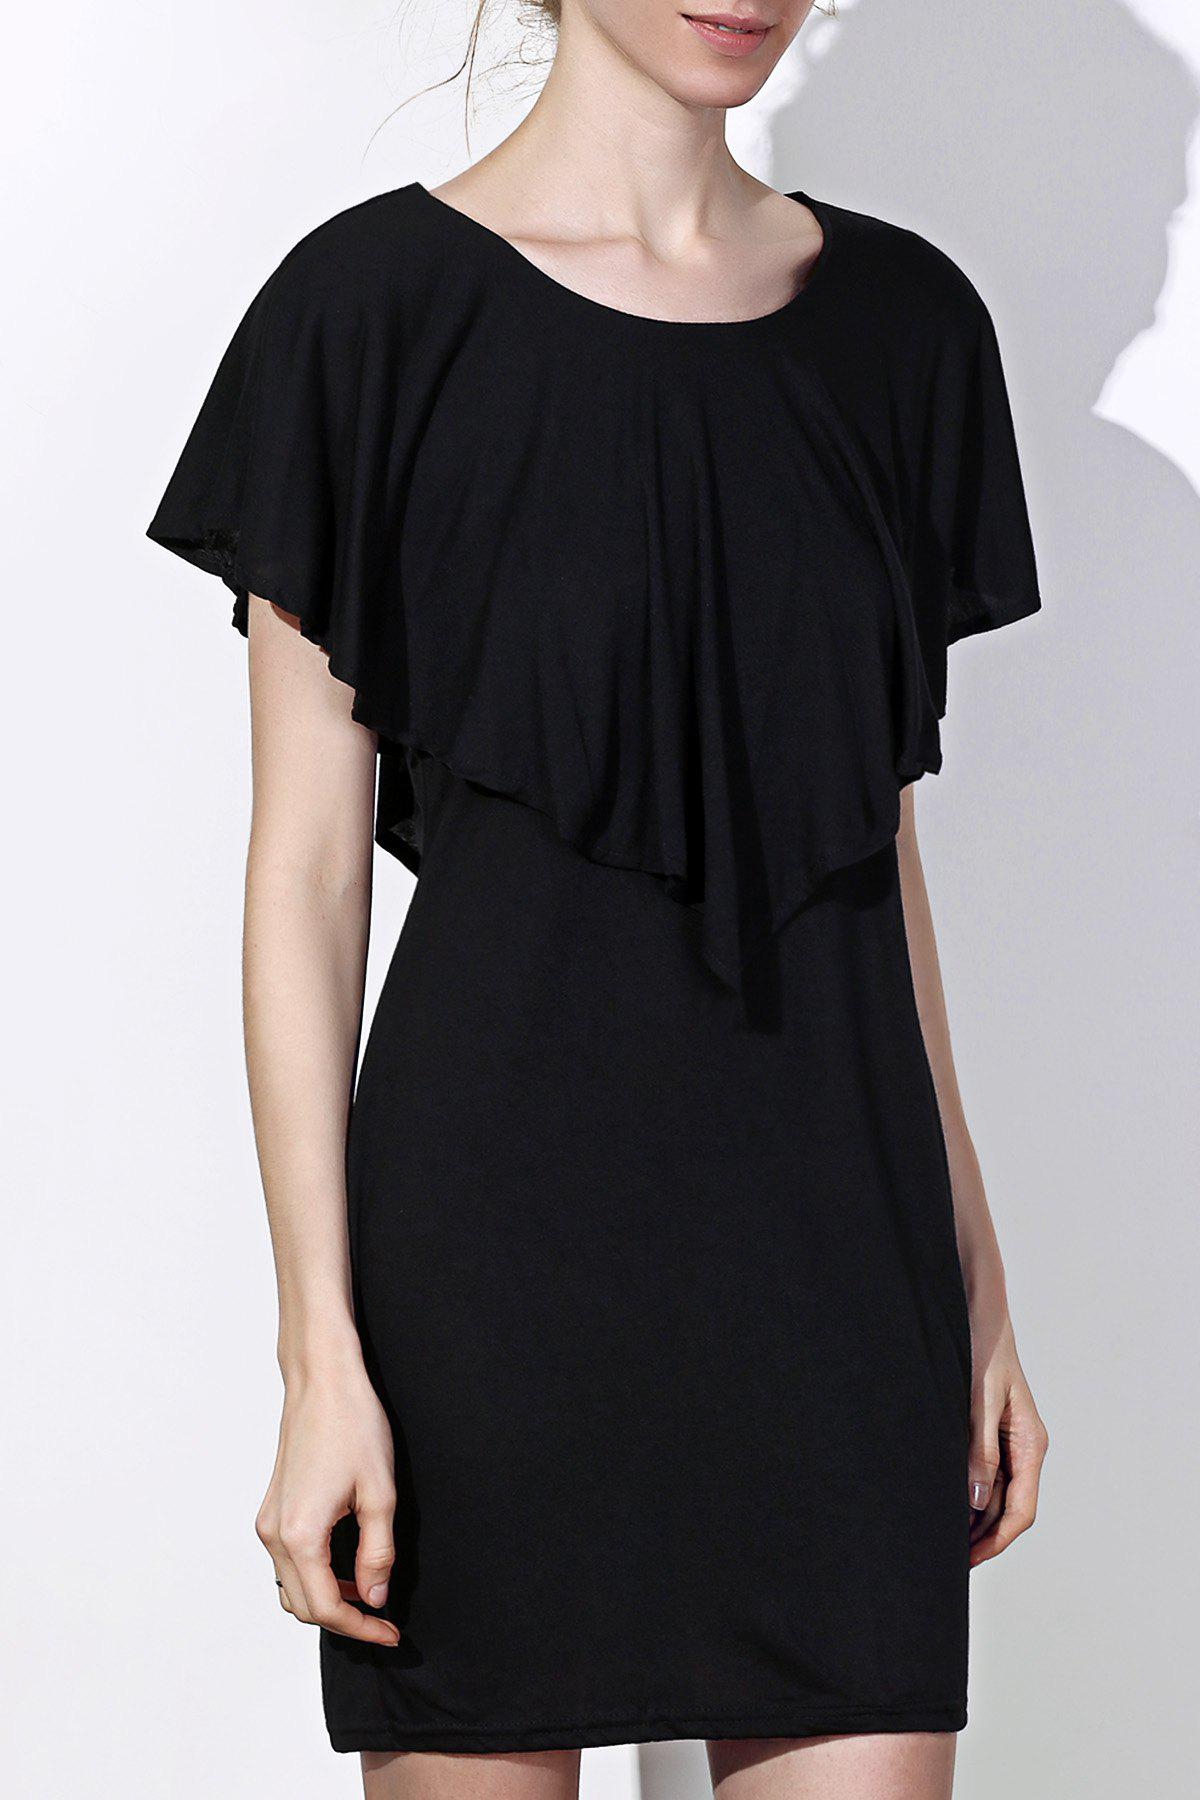 Fashionable Womens Scoop Neck Solid Color Short Sleeve DressWomen<br><br><br>Size: 2XL<br>Color: BLACK